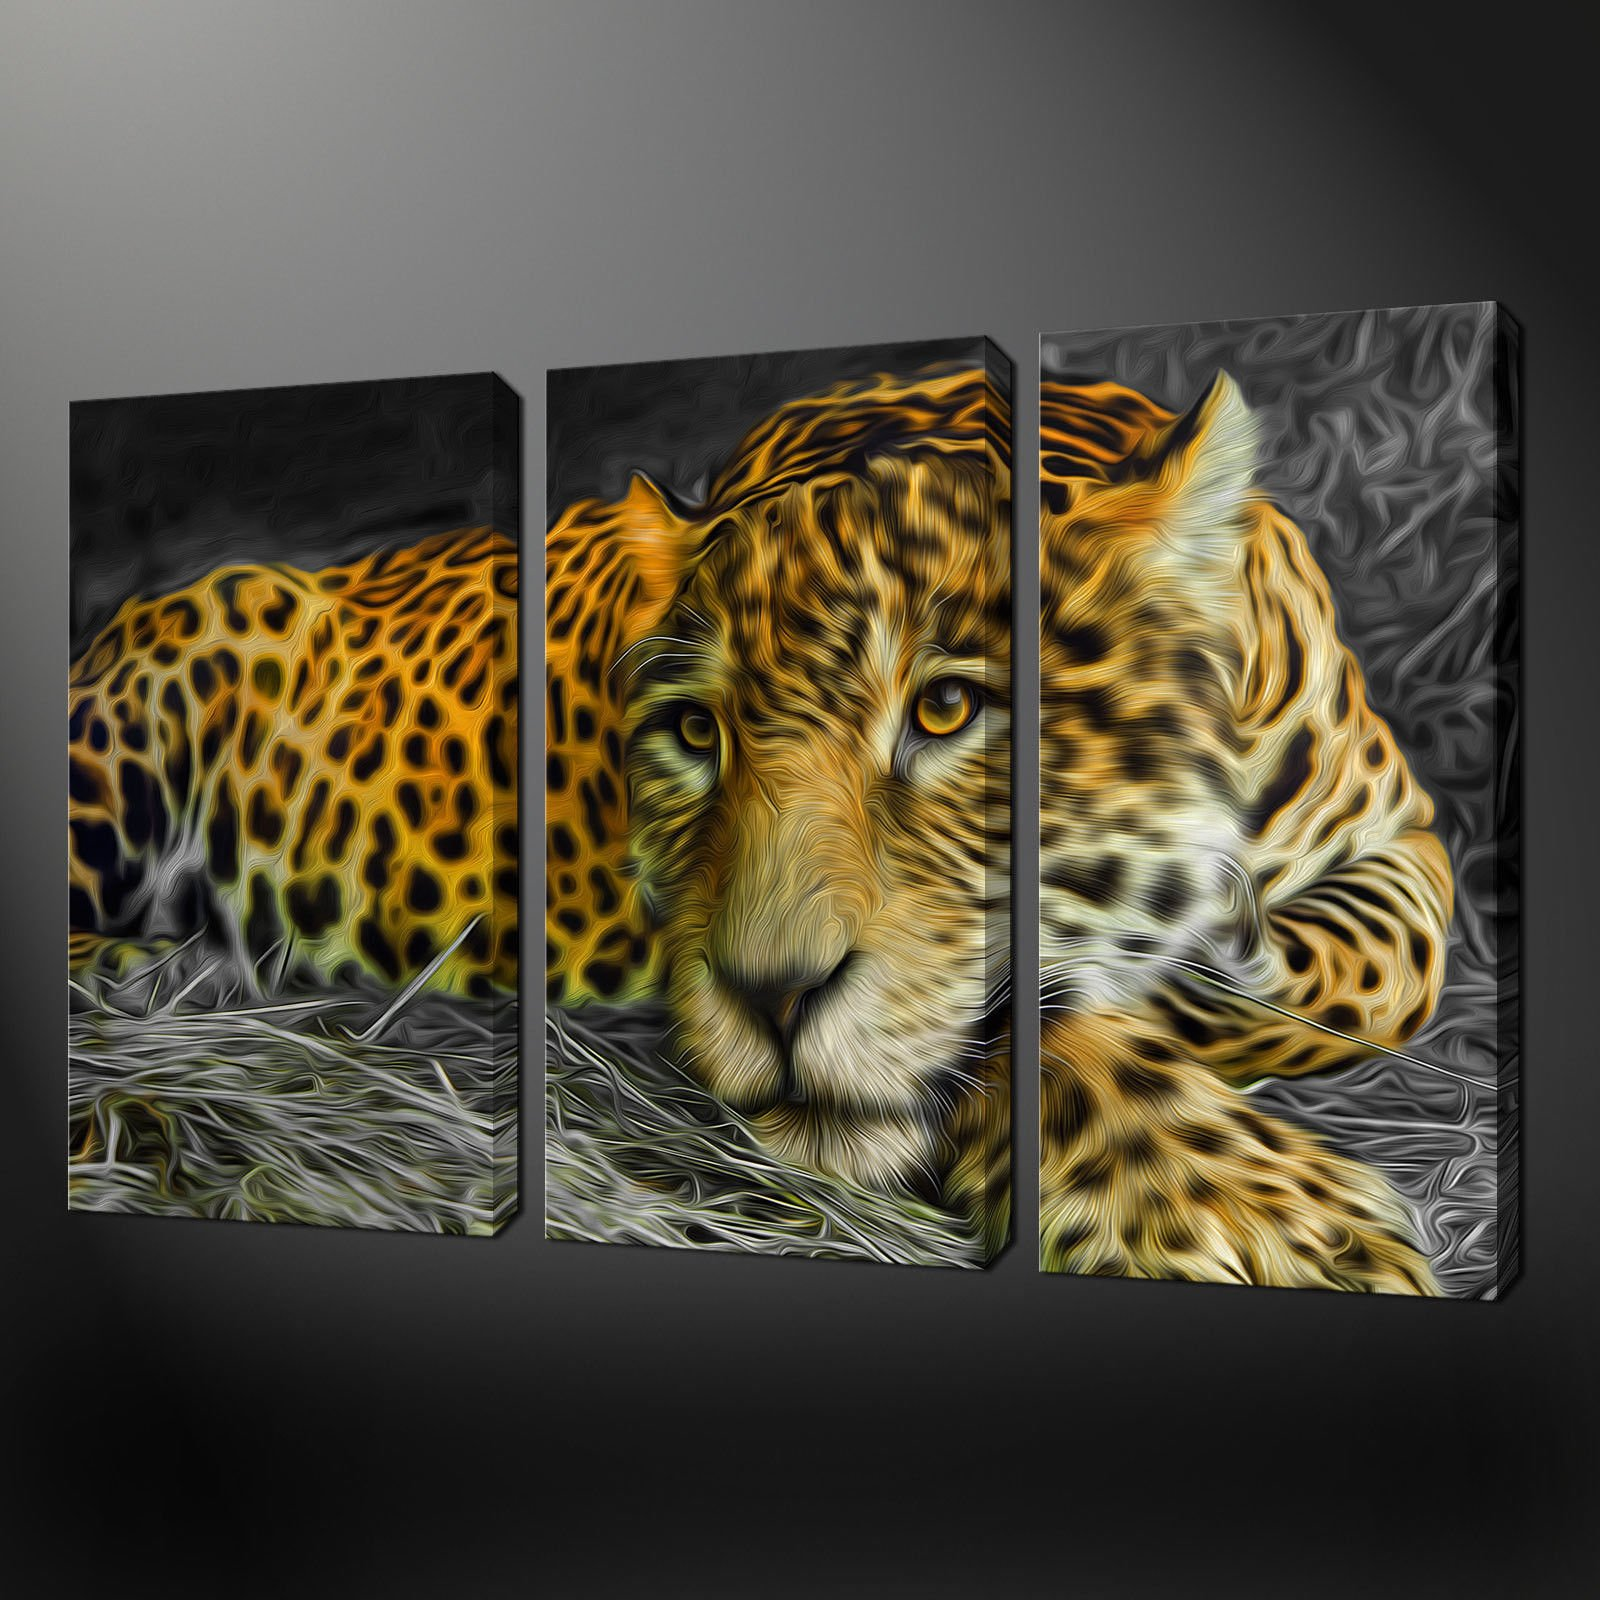 Canvas print pictures high quality handmade free next for 3 panel painting